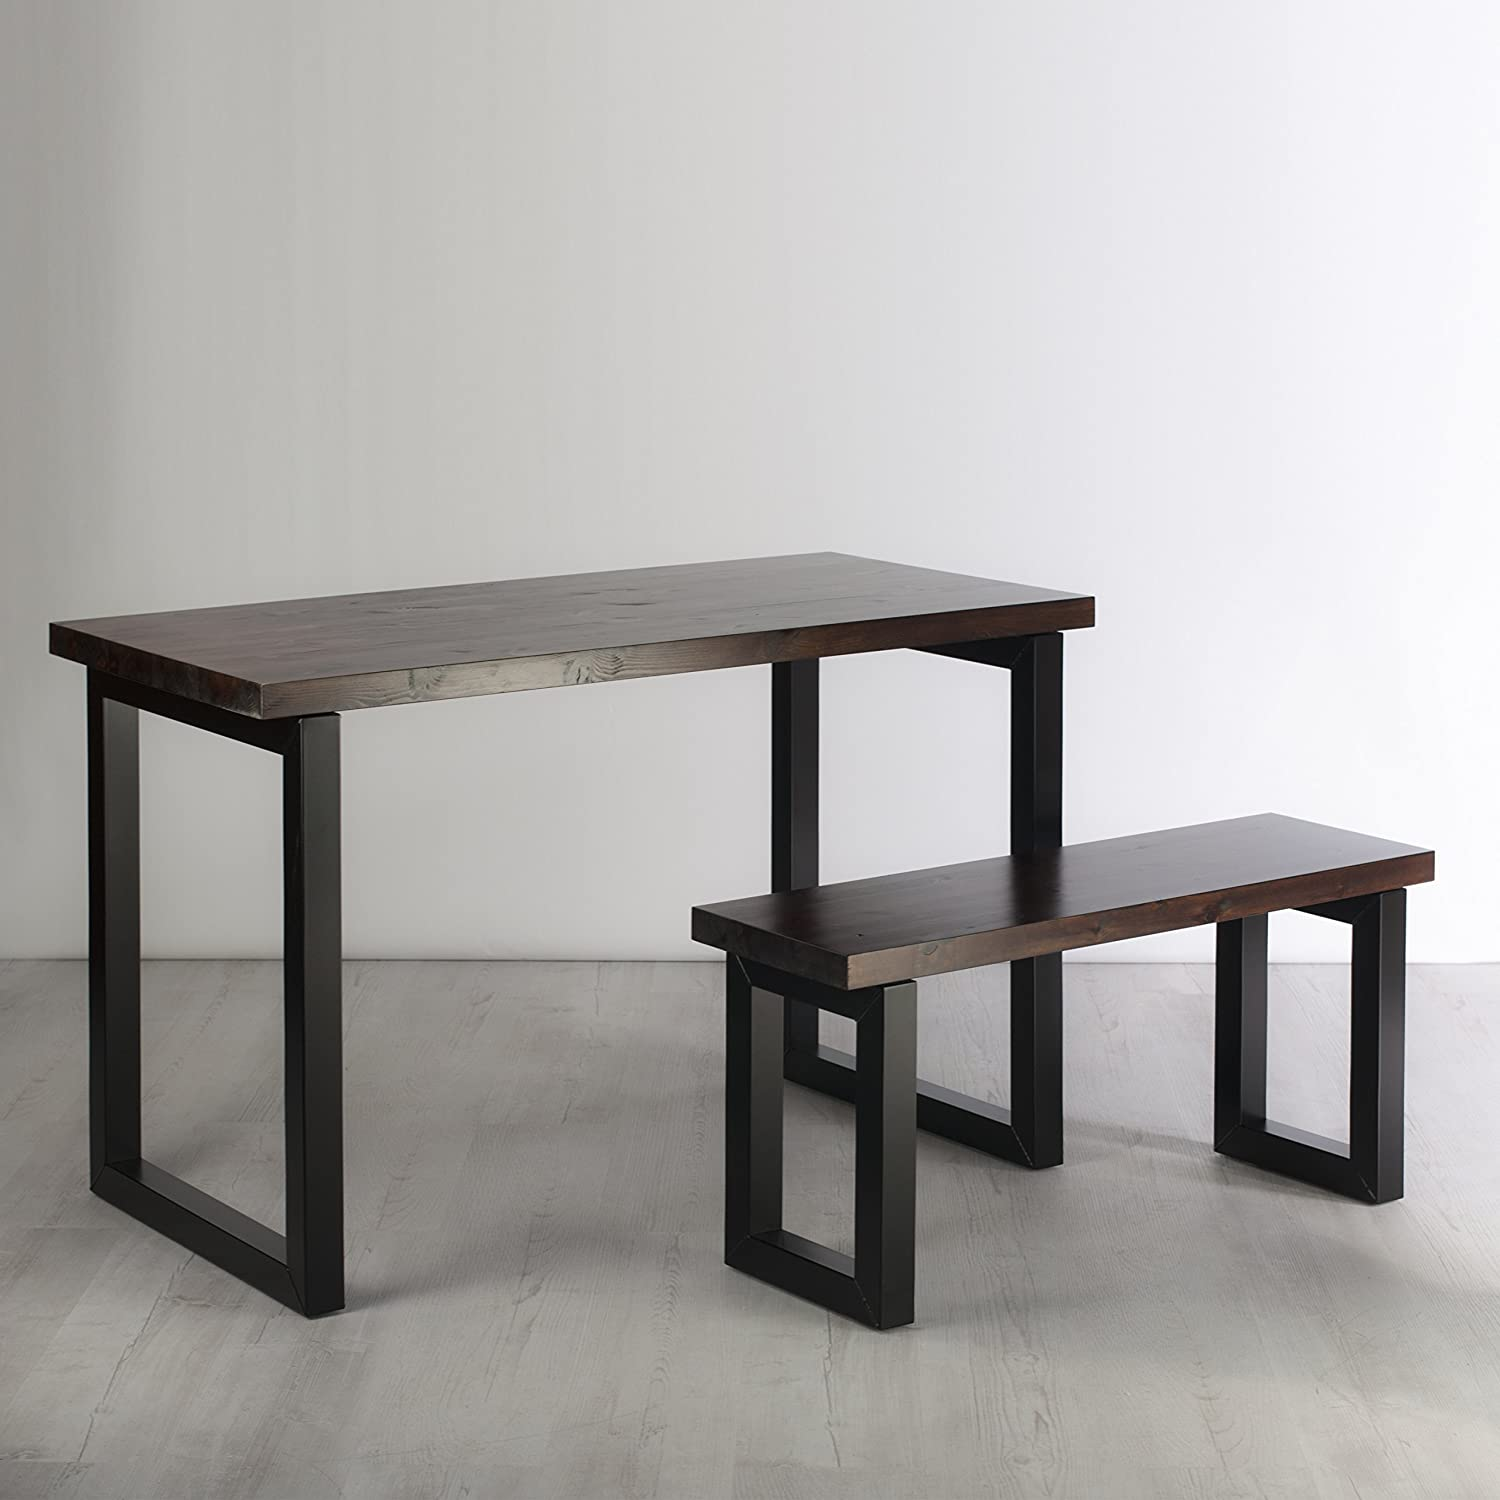 Solid Wood Industrial Desk with Bench - Rustic Jacobian Dark